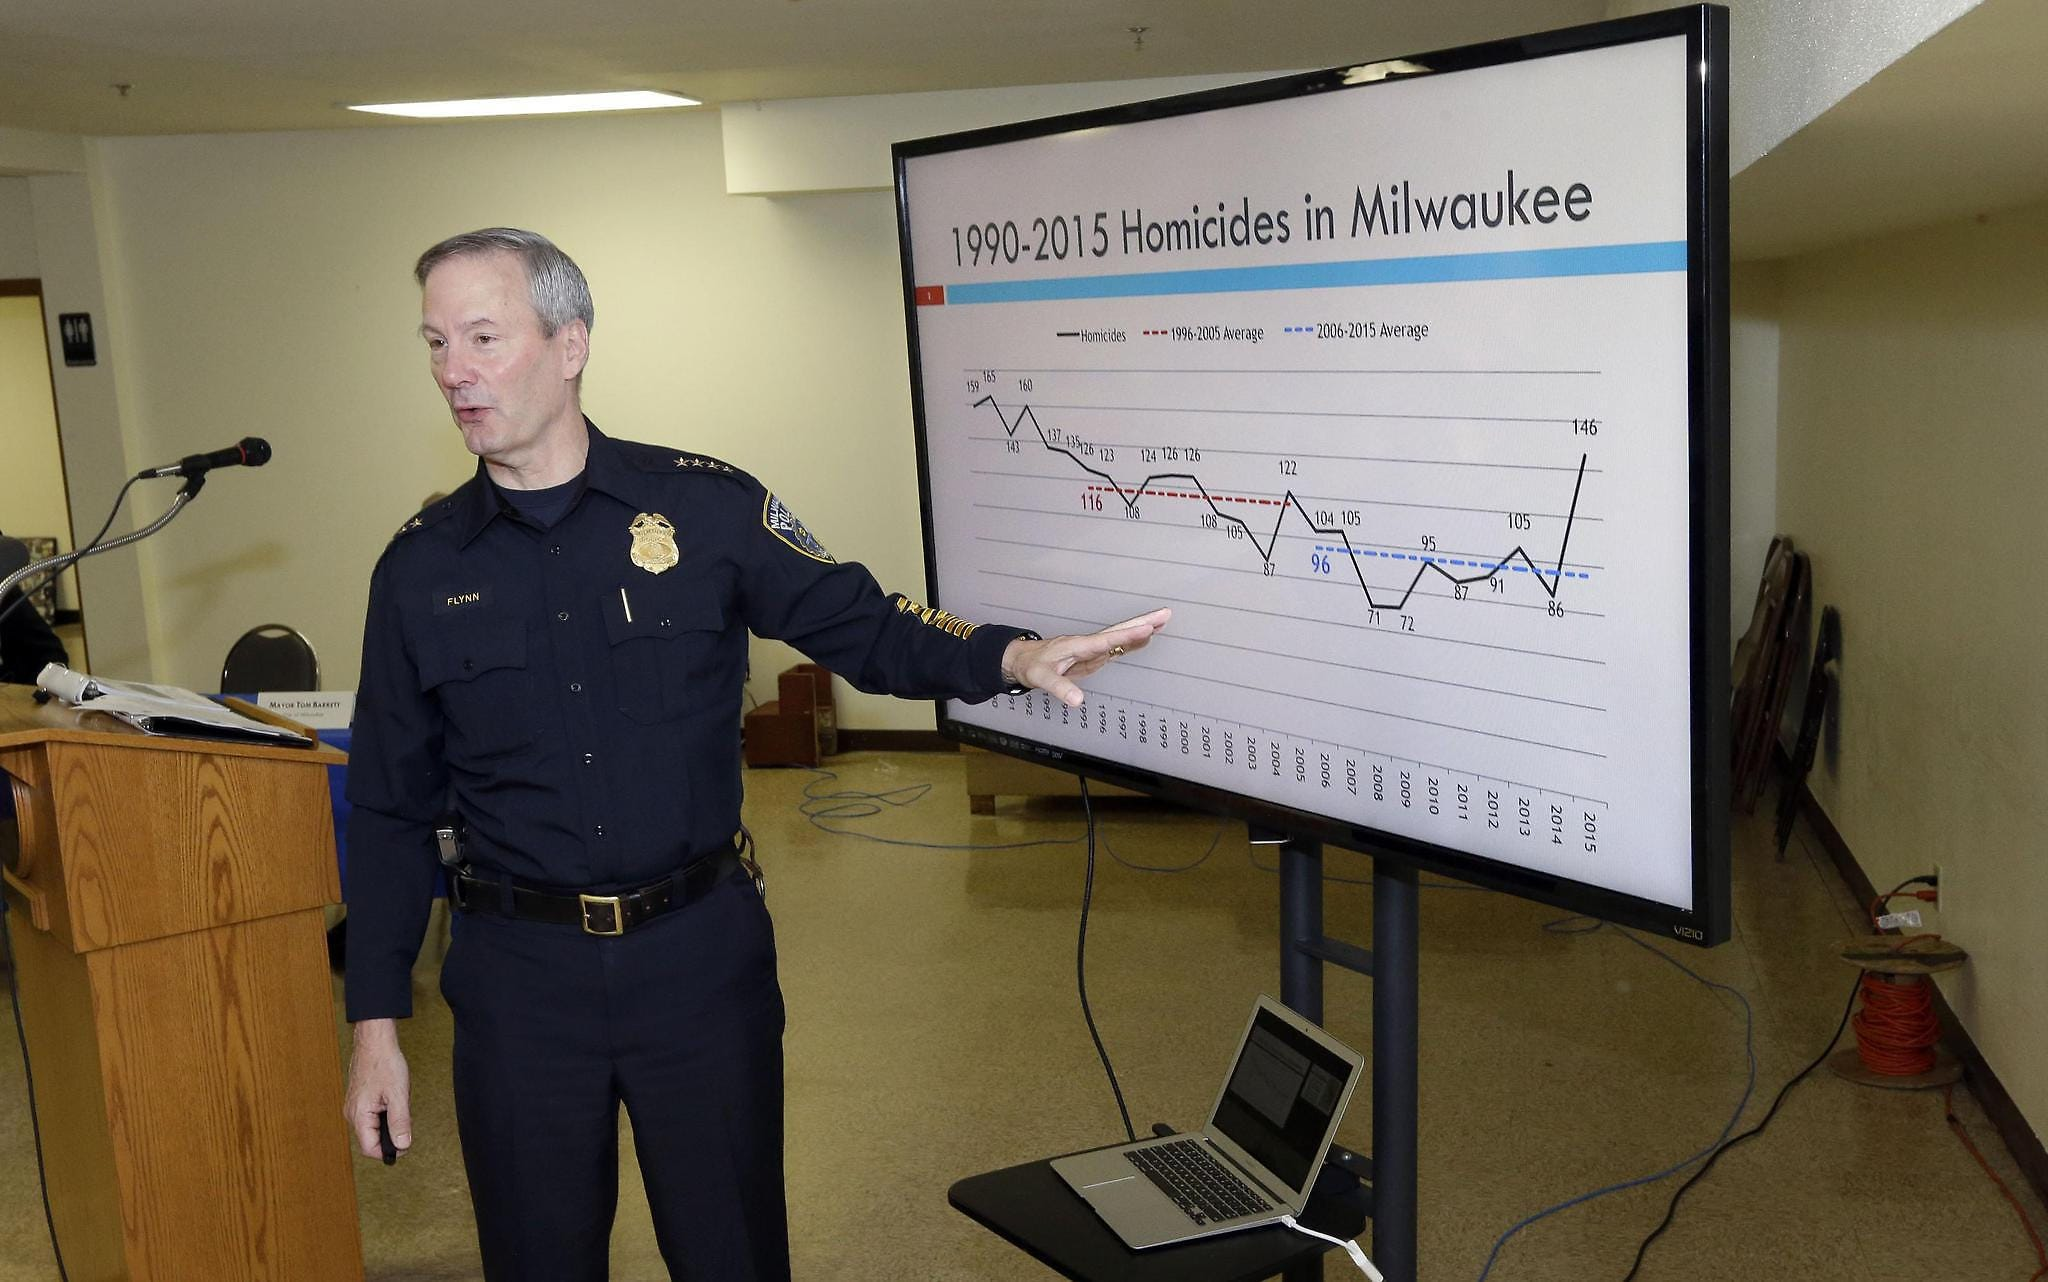 Former Police Chief Edward Flynn in 2016 dismissed allegations of racially biased policing within the department, saying he used data to drive his decisions.